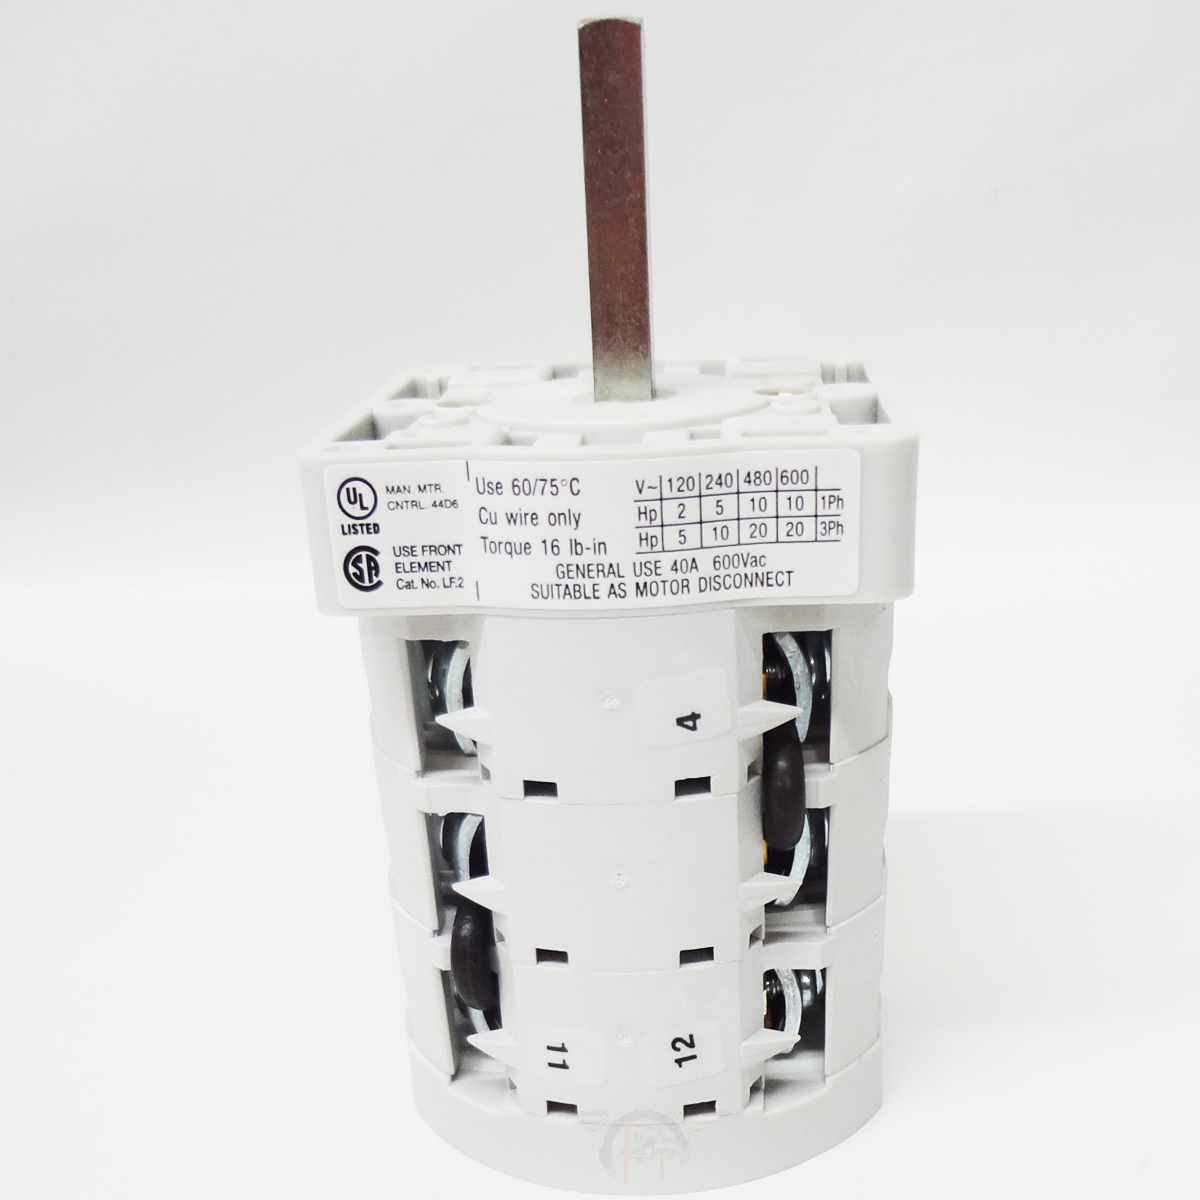 accuturn tire machine changer electric switch motor 0016433 accuturn tire changer forward reversing switch 20016433  at fashall.co